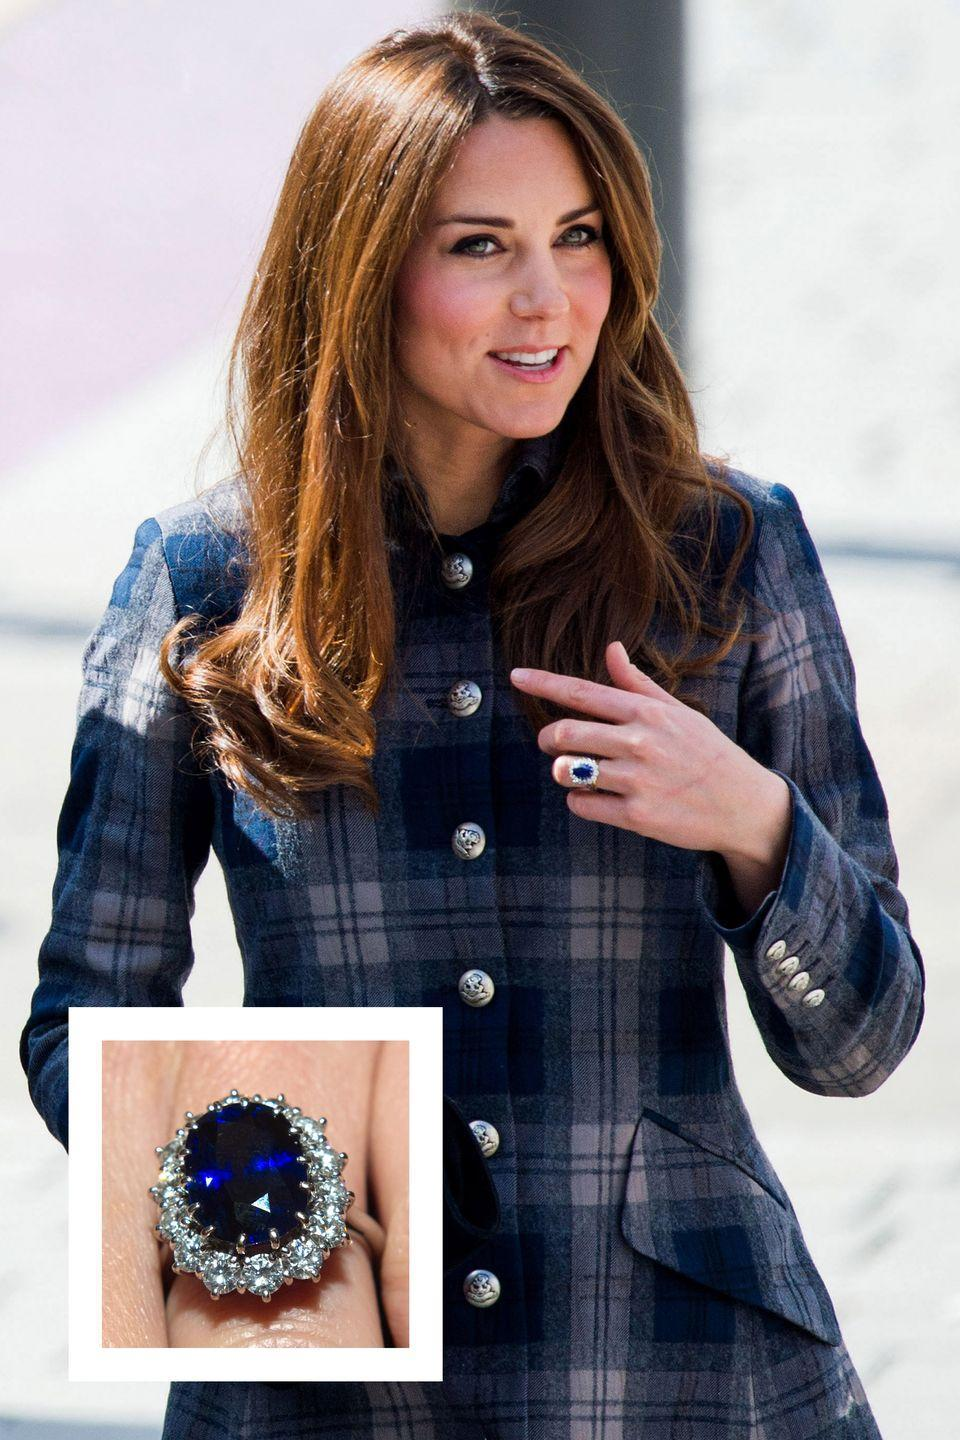 """<p>Prince William proposed to then-Kate Middleton back in 2010 with a familiar ring: <a href=""""https://www.townandcountrymag.com/style/jewelry-and-watches/a13052347/kate-middleton-engagement-ring/"""" rel=""""nofollow noopener"""" target=""""_blank"""" data-ylk=""""slk:the gorgeous sapphire engagement ring"""" class=""""link rapid-noclick-resp"""">the gorgeous sapphire engagement ring</a> that once <a href=""""https://www.townandcountrymag.com/style/jewelry-and-watches/a12050331/princess-dianas-jewelry-kate-middleton-wears/"""" rel=""""nofollow noopener"""" target=""""_blank"""" data-ylk=""""slk:belonged to his mother, Princess Diana."""" class=""""link rapid-noclick-resp"""">belonged to his mother, Princess Diana.</a> The ring features a 12-carat oval Ceylon center stone surrounded 14 solitaire diamonds <a href=""""https://www.townandcountrymag.com/style/jewelry-and-watches/a12810540/royal-jeweler-house-of-garrard-interview/"""" rel=""""nofollow noopener"""" target=""""_blank"""" data-ylk=""""slk:created by royal jeweler Garrard."""" class=""""link rapid-noclick-resp"""">created by royal jeweler Garrard.</a></p>"""